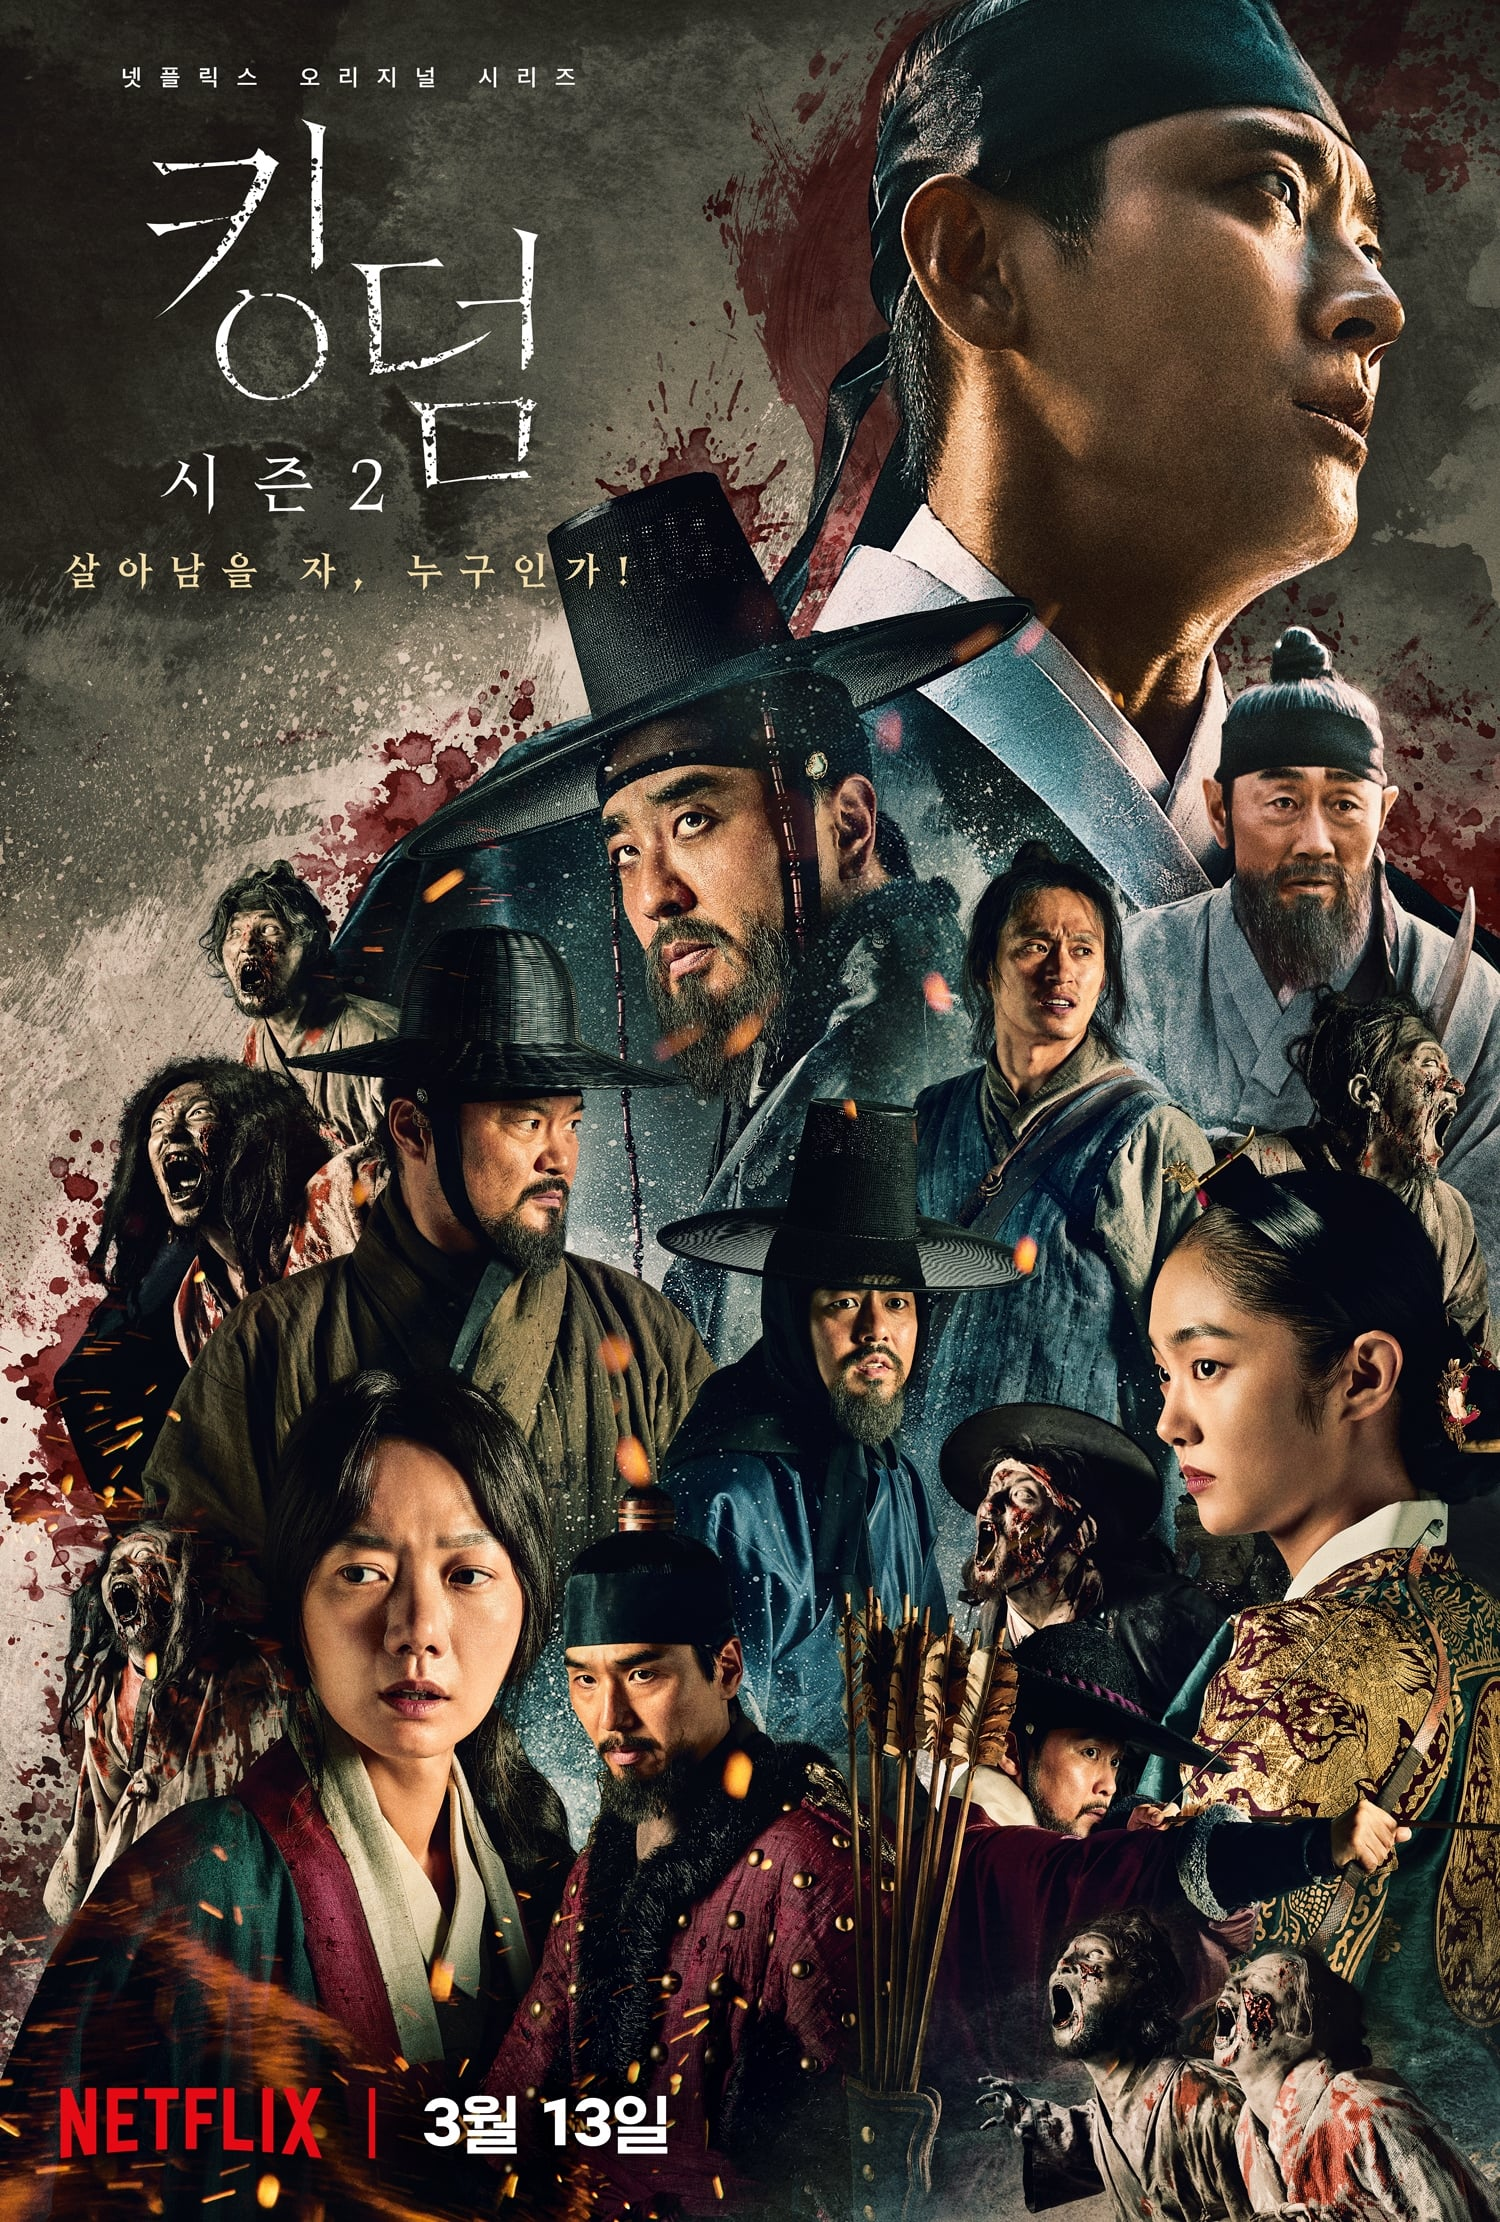 Kingdom S2 (2020) Subtitle Indonesia